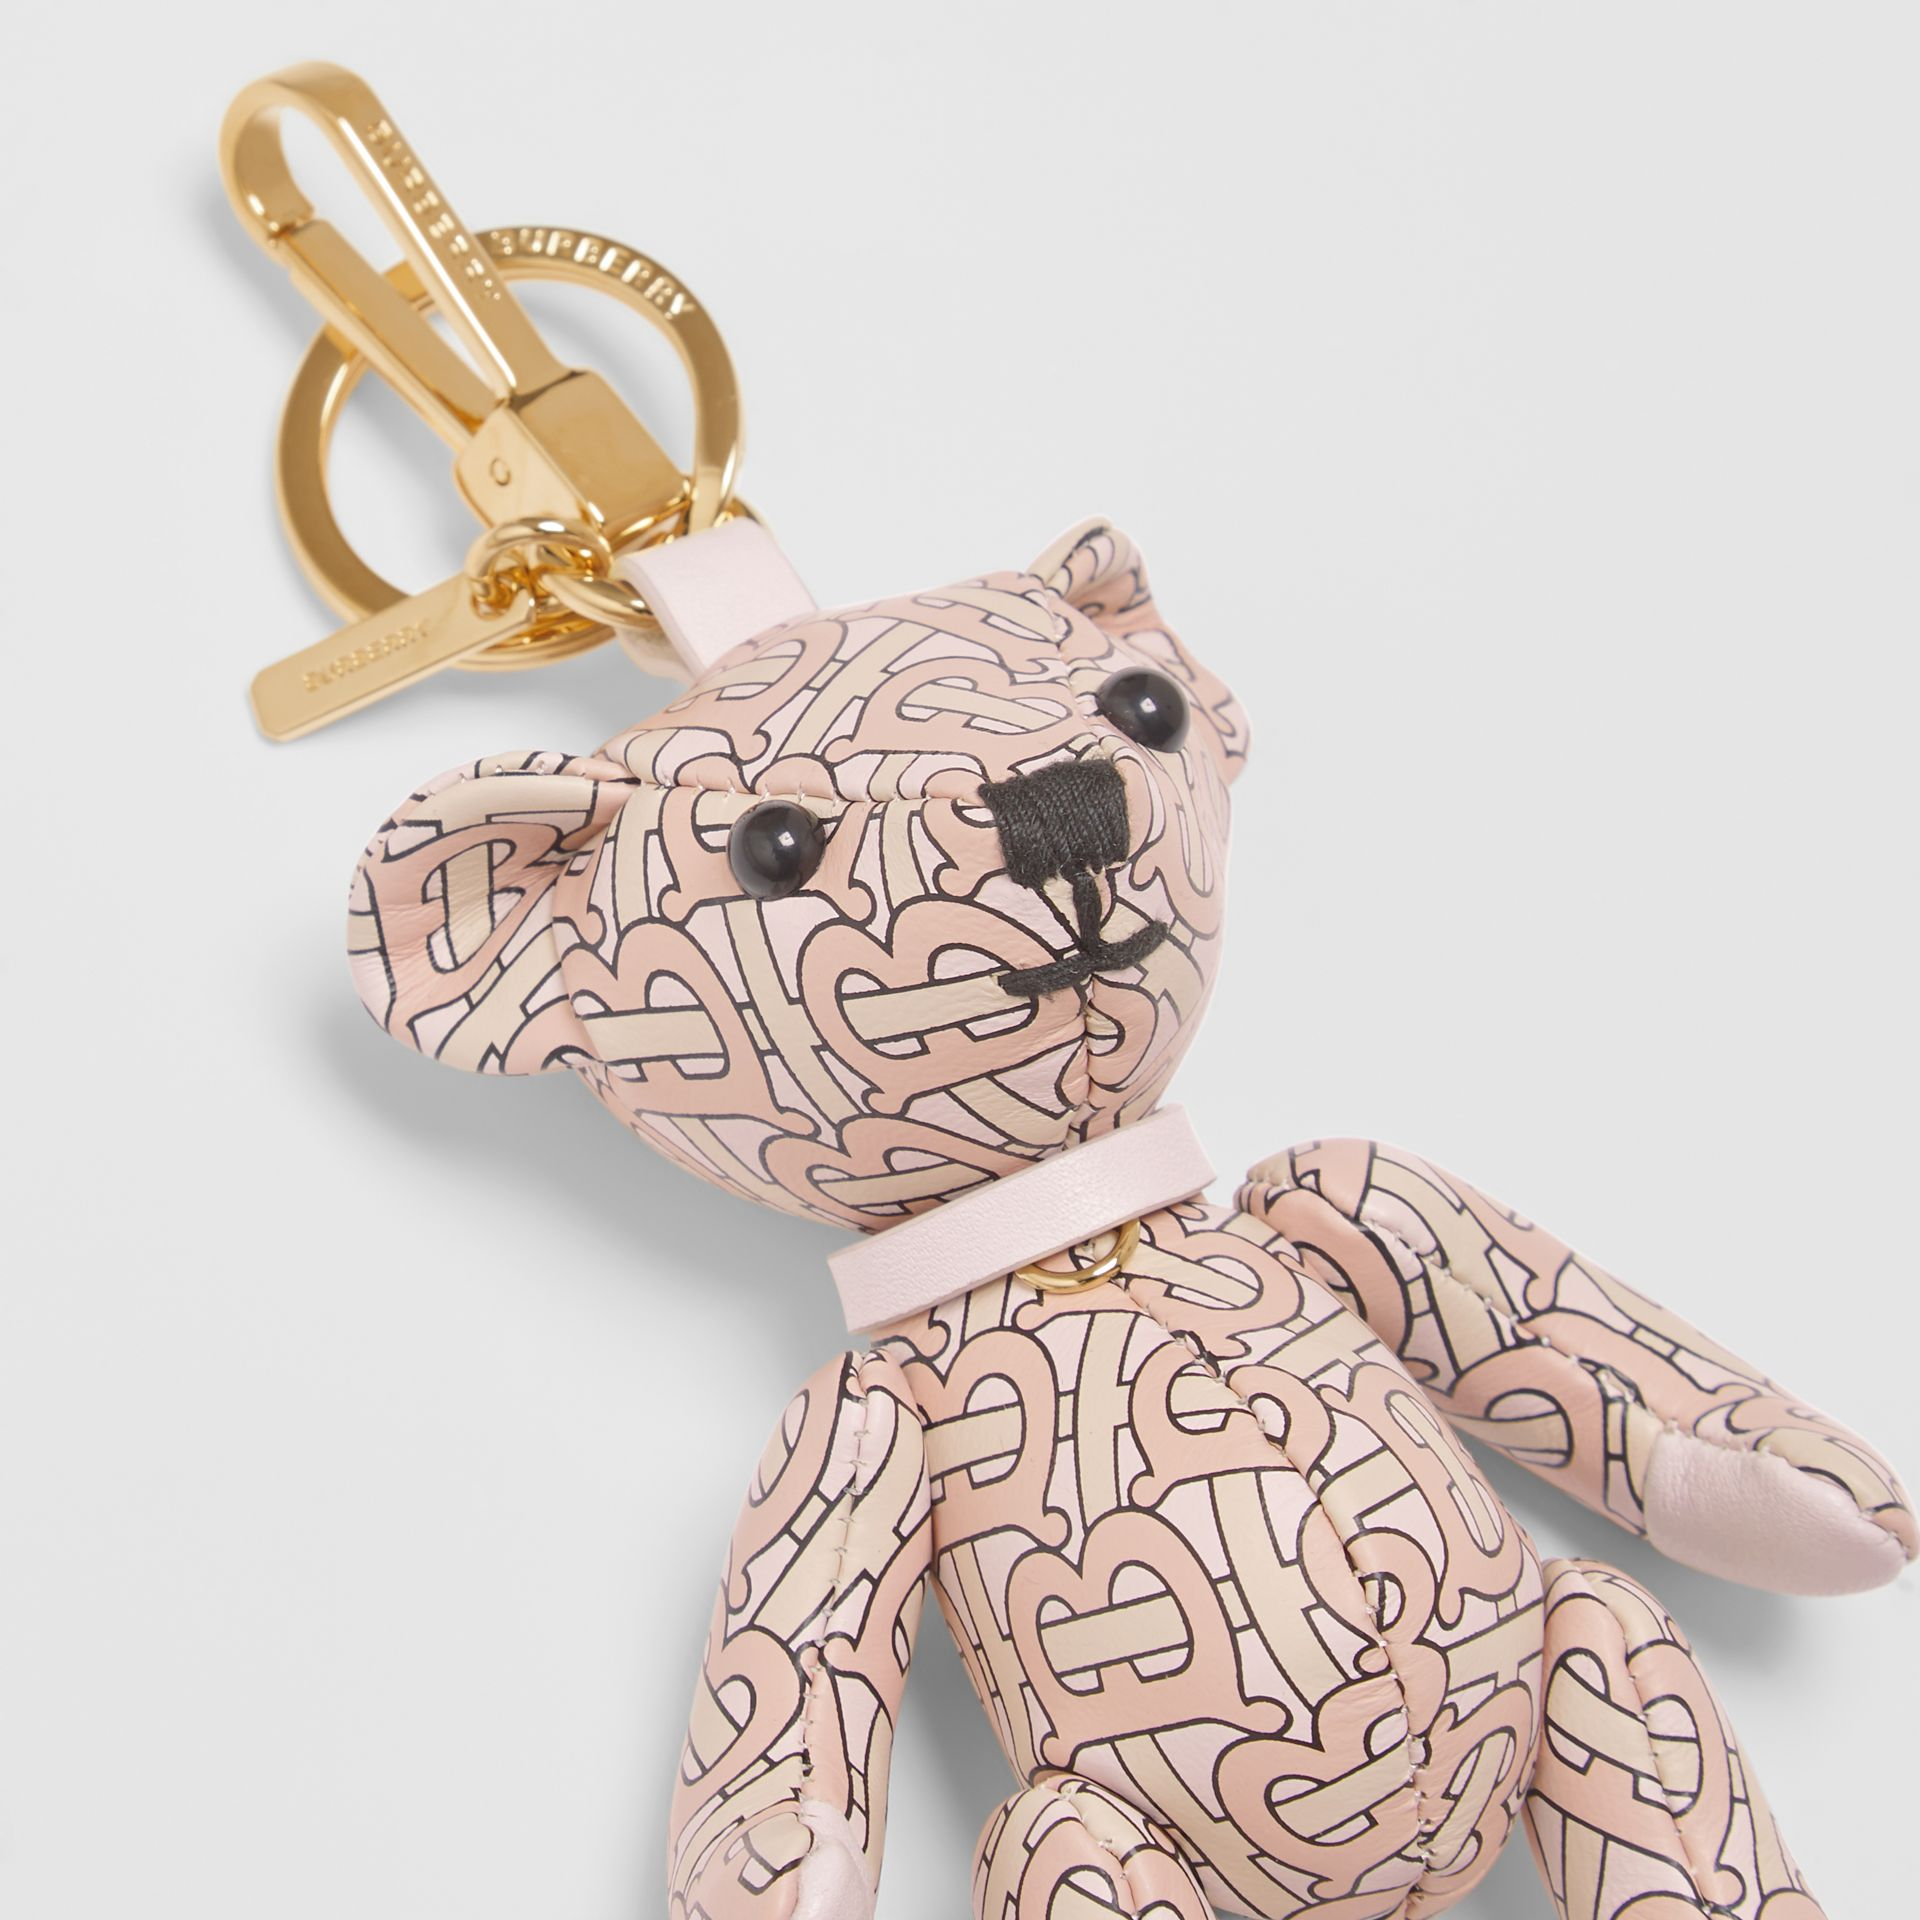 Bijou porte-clés Thomas Bear en cuir Monogram (Rose Blush) - Femme | Burberry - photo de la galerie 1